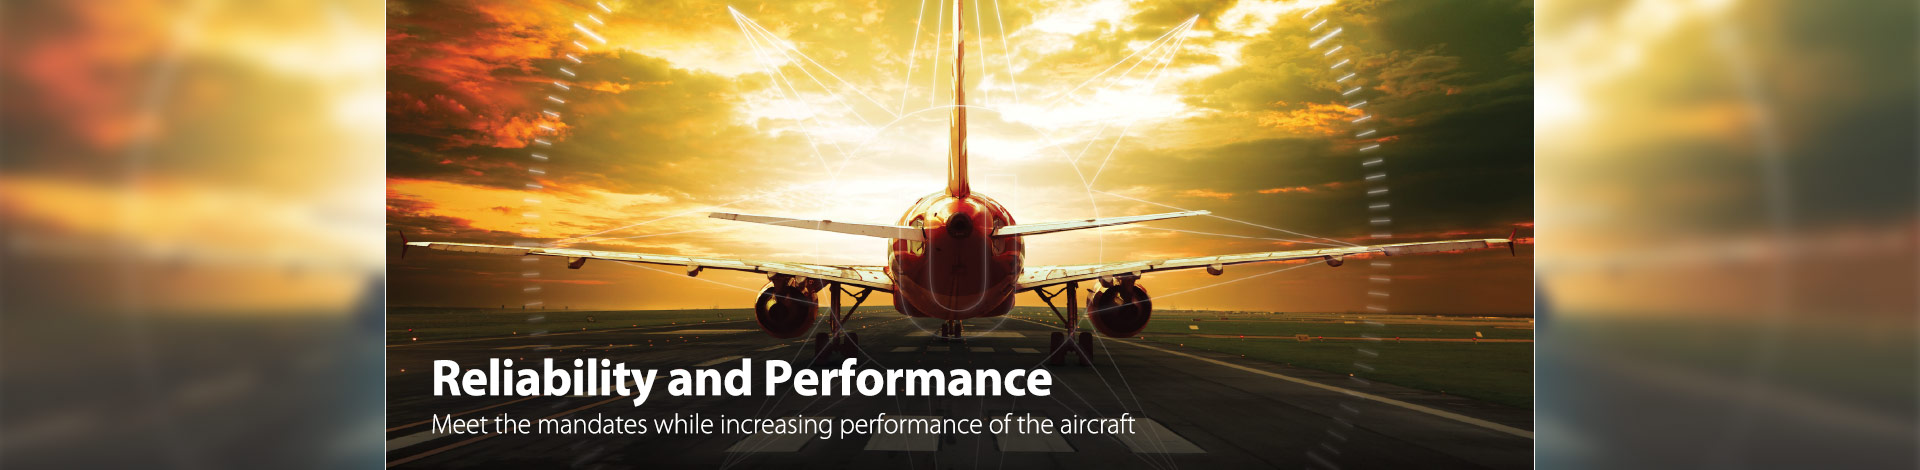 Reliability and Performance